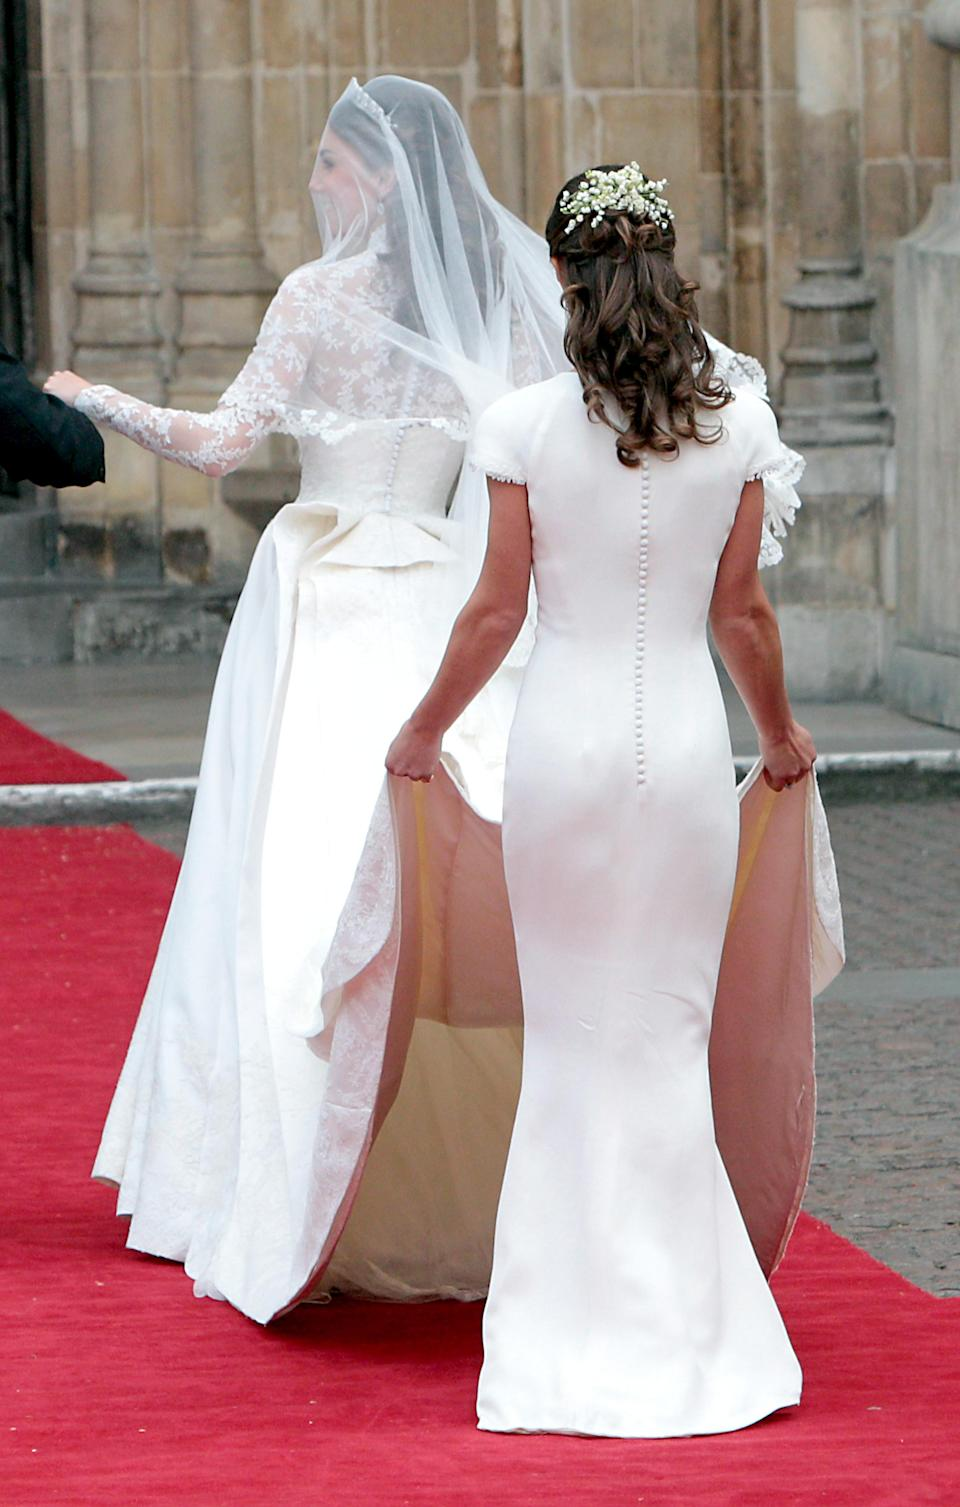 Pippa Middleton's posterior also caused a plastic surgery trend in 2011 [Photo: Getty]